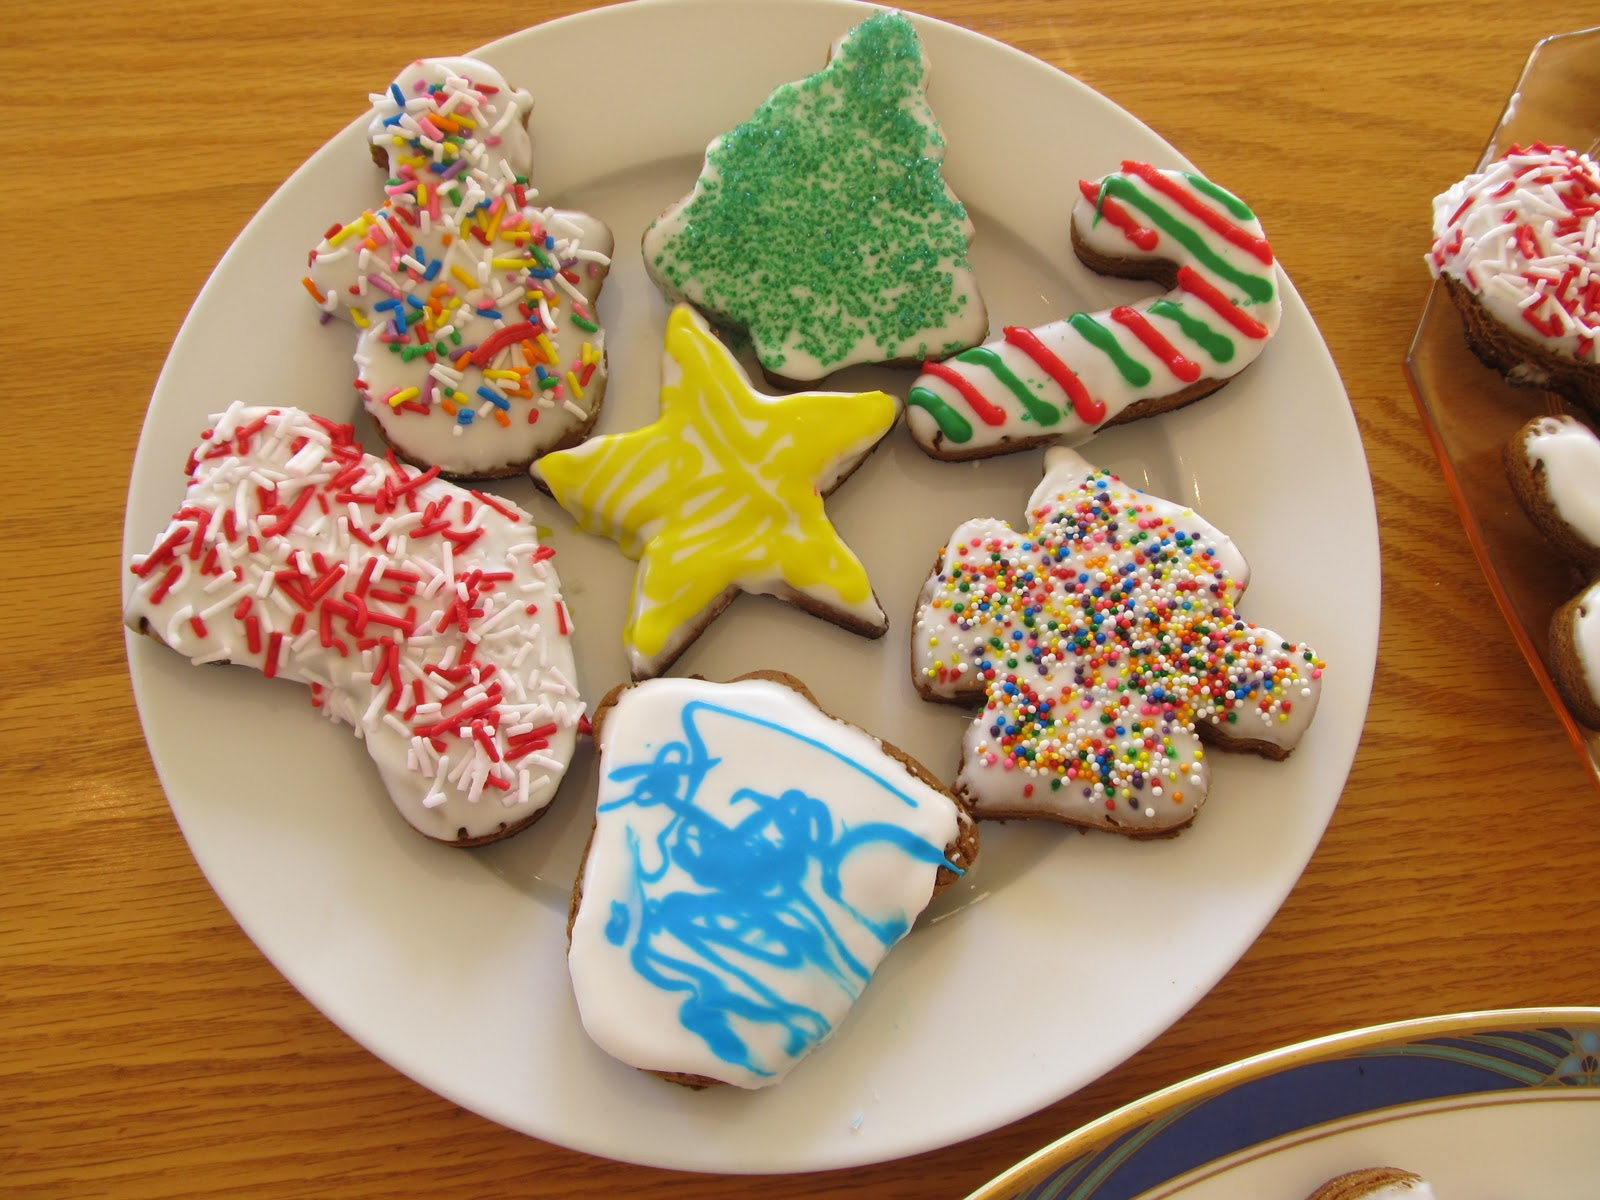 High Park Home Daycare Royal Icing Makes Kids Cookie : cookie decorating ideas christmas - www.pureclipart.com